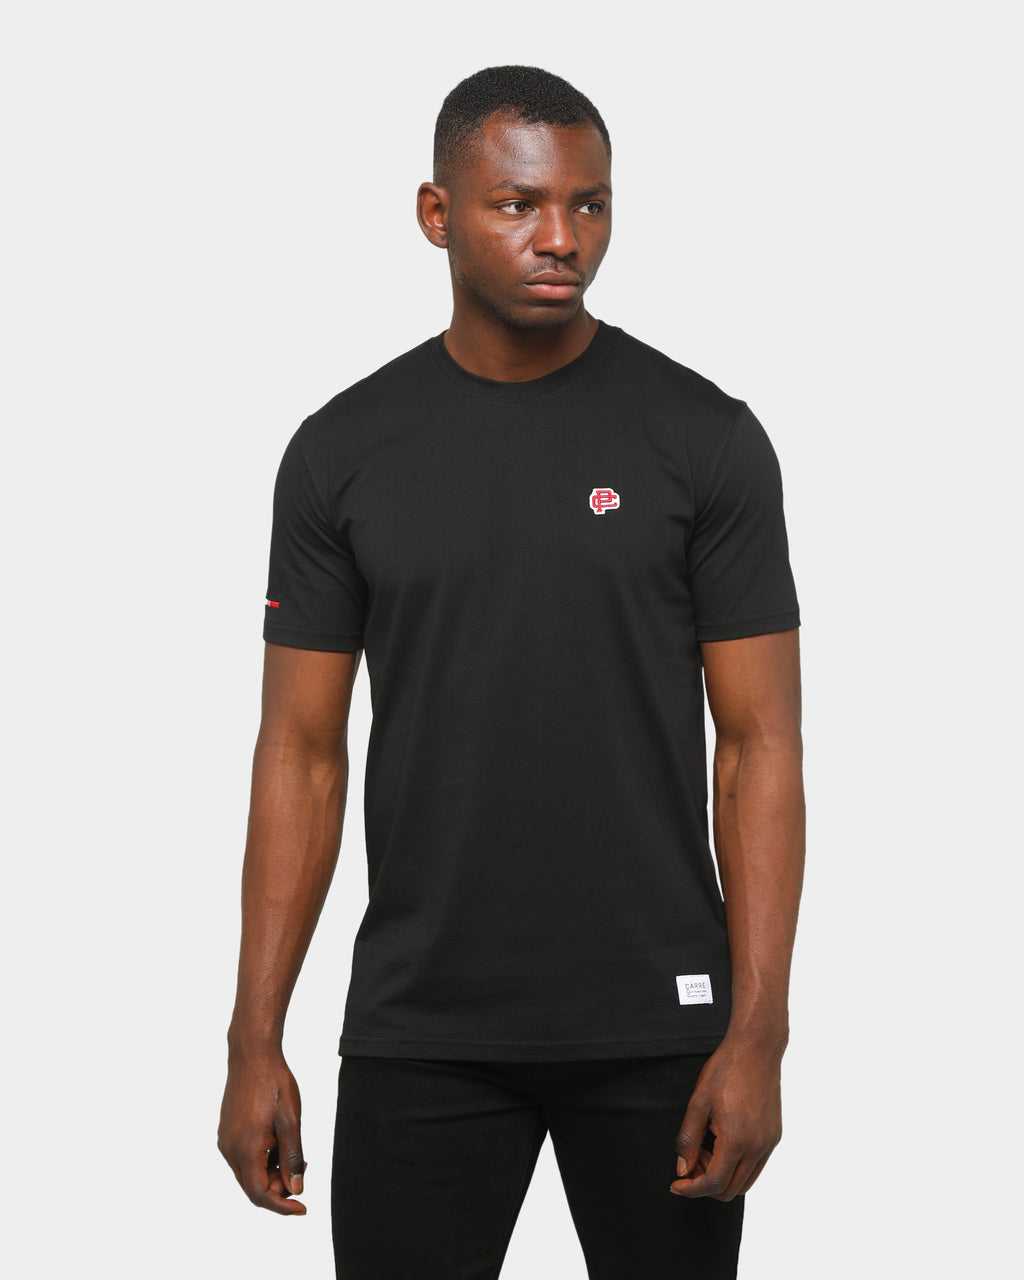 Carre Mono Classique Short-Sleeve T-Shirt Black